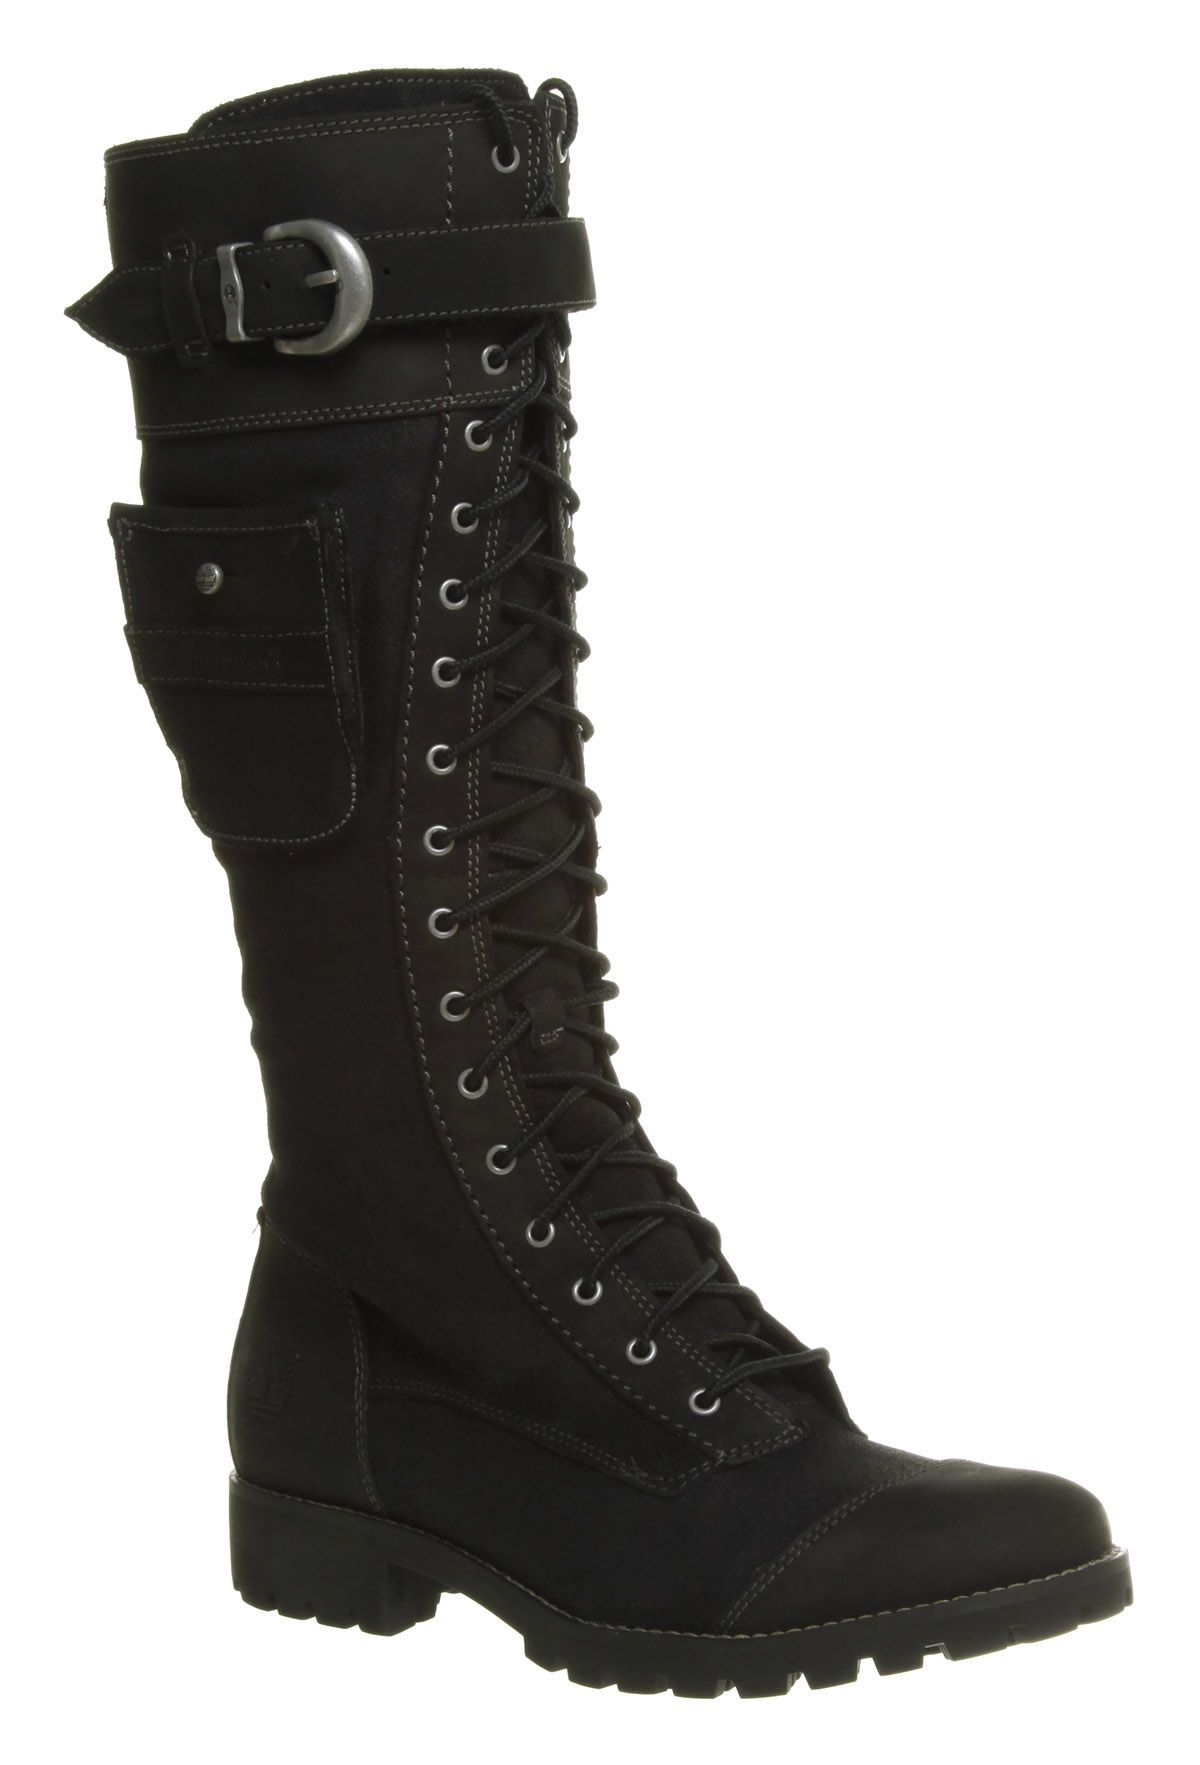 a21a28fe7df3be Women s Timberland Atrus Knee High Zip Lace Up Black Leather Boots ...